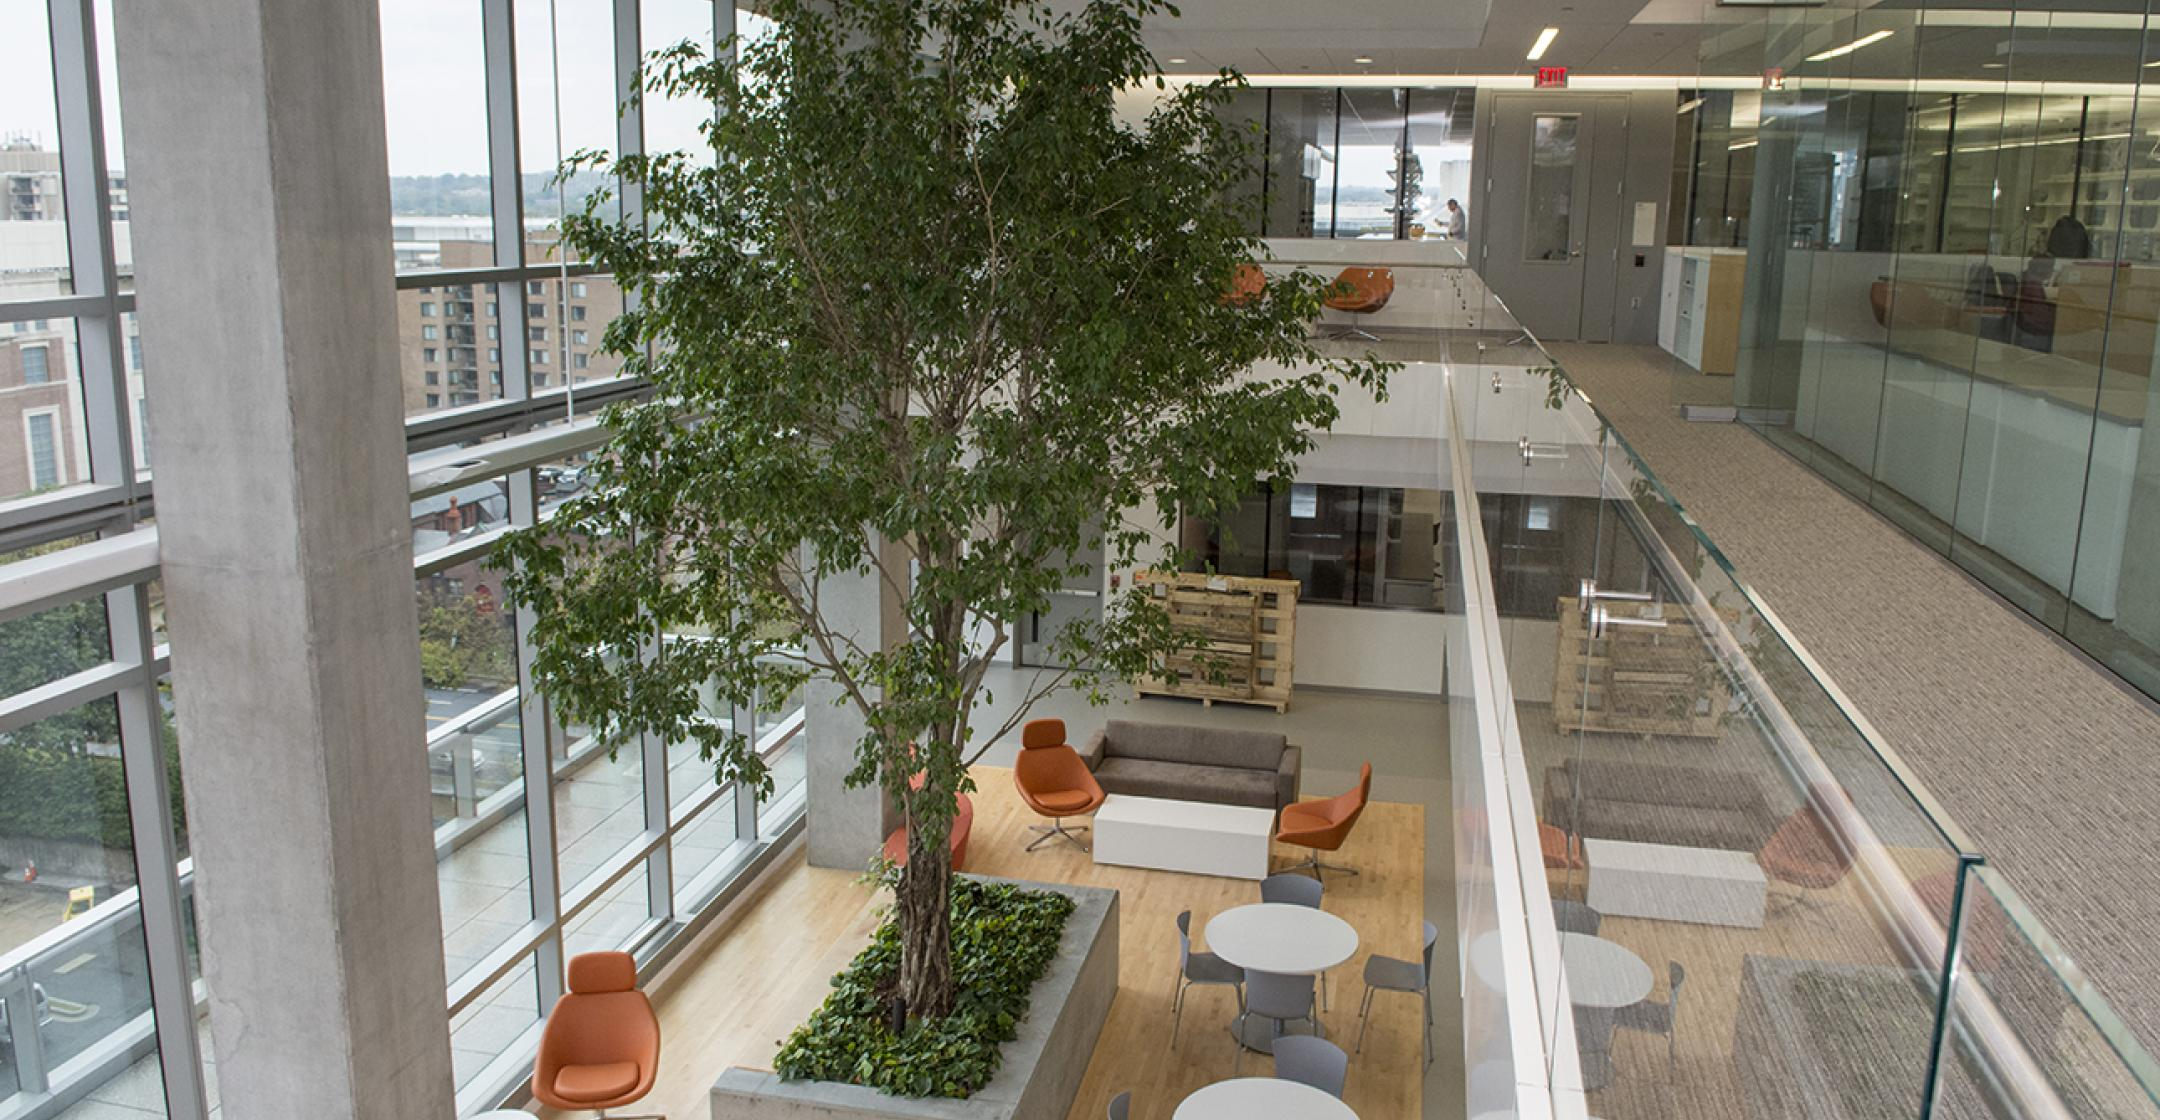 Photo of the GW Cancer Center Lab common area